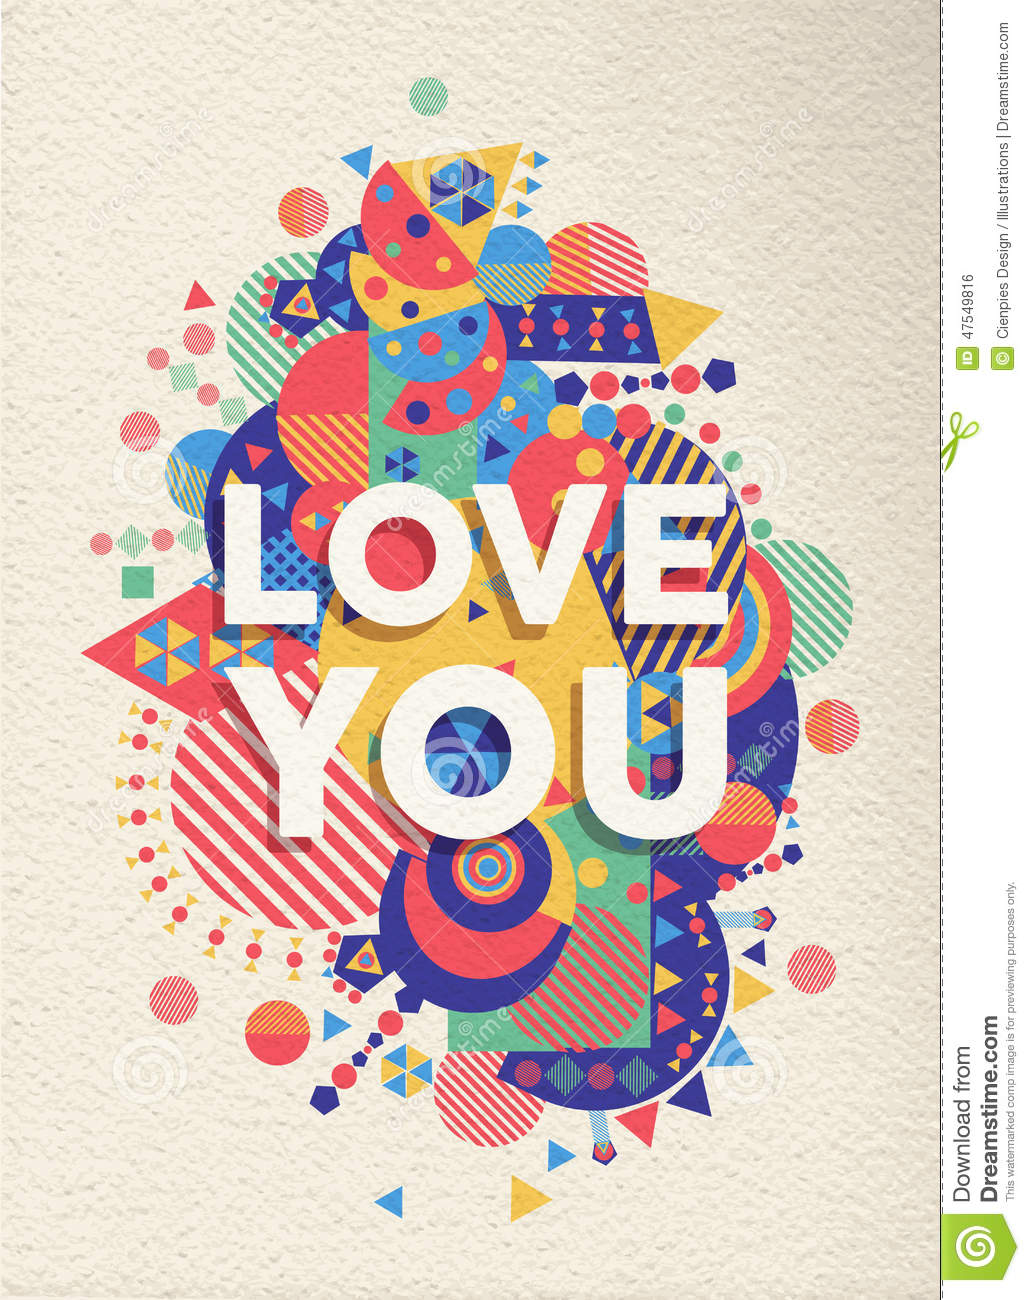 Love you quote poster designQuote Poster Design